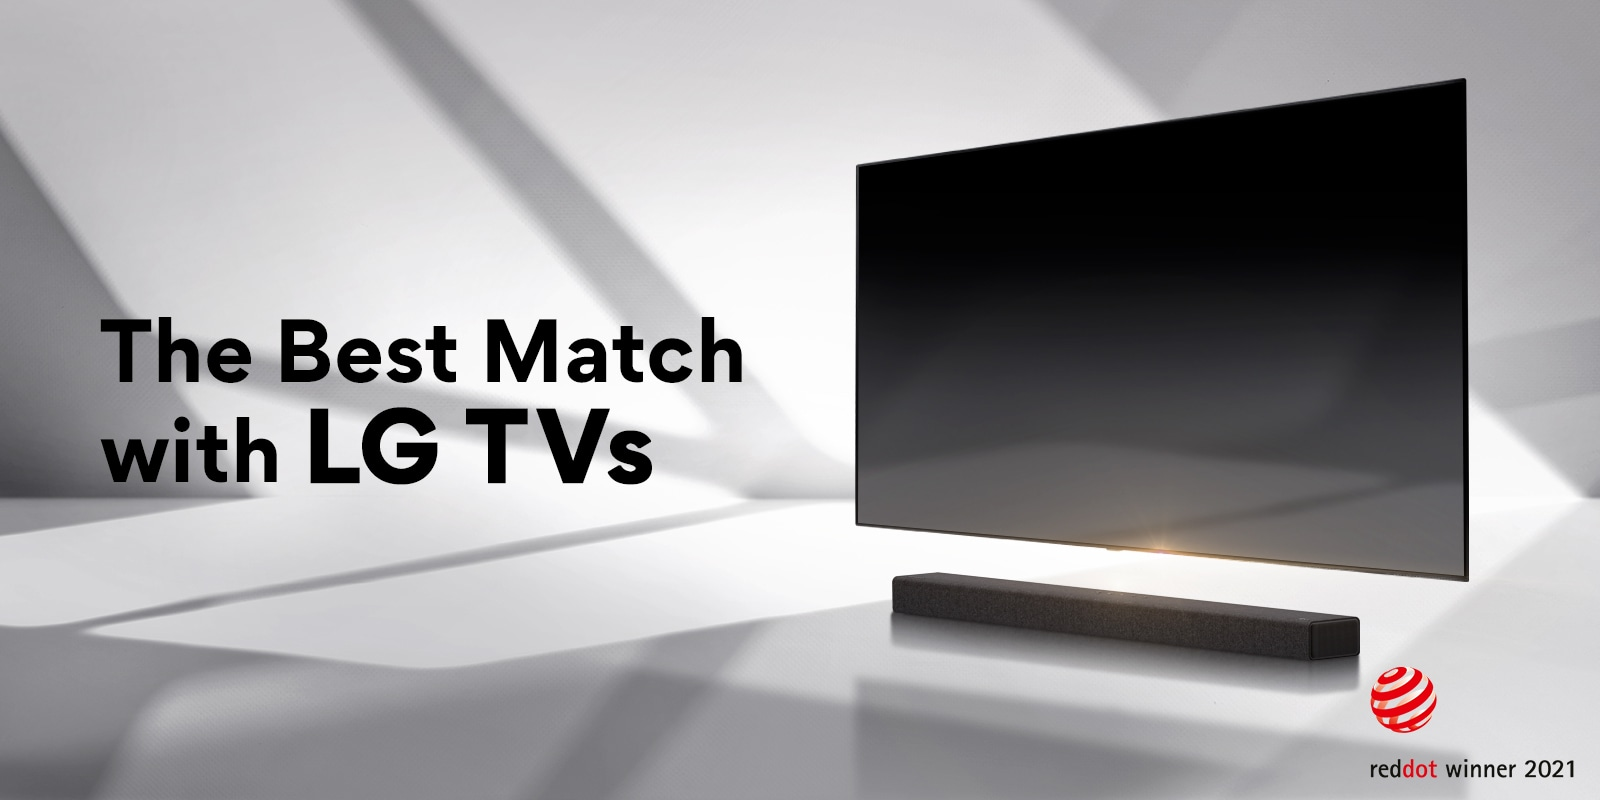 A soundbar and a TV are placed on a white floor and there is a shadow coming from outside right behind. Reddot award logo is placed right next to soundbar.